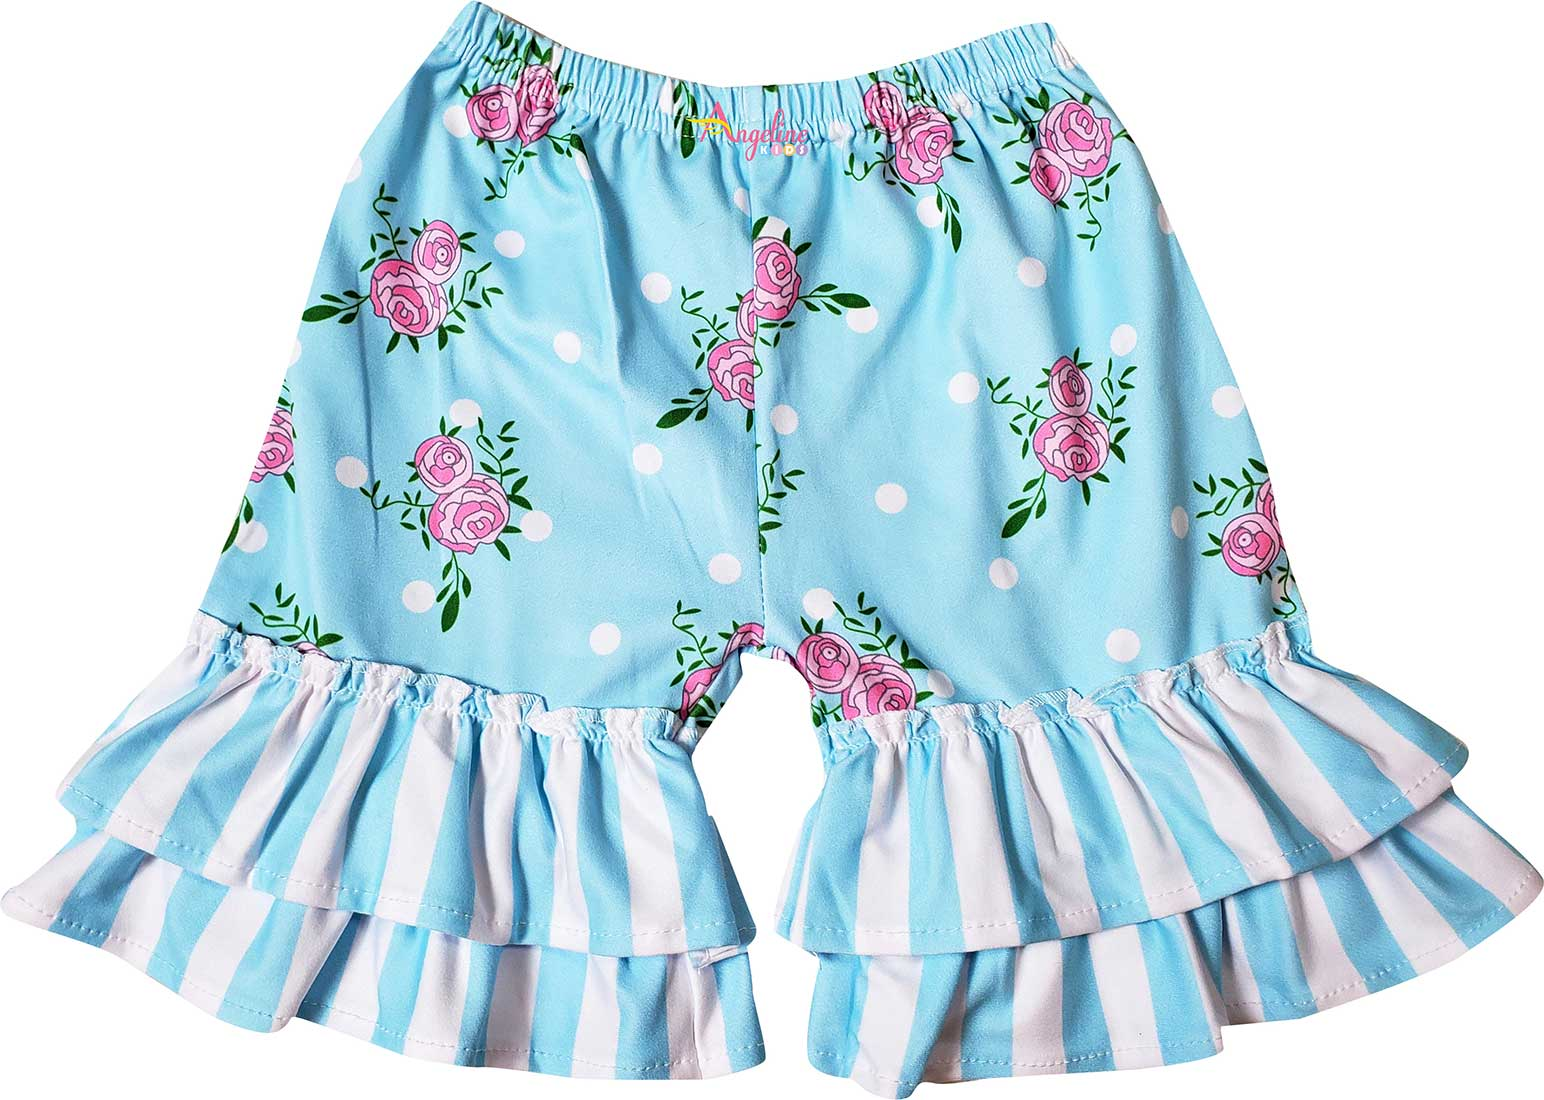 Baby Toddler Little Girls Spring Roses Ruffles Dress Capri Pants Set